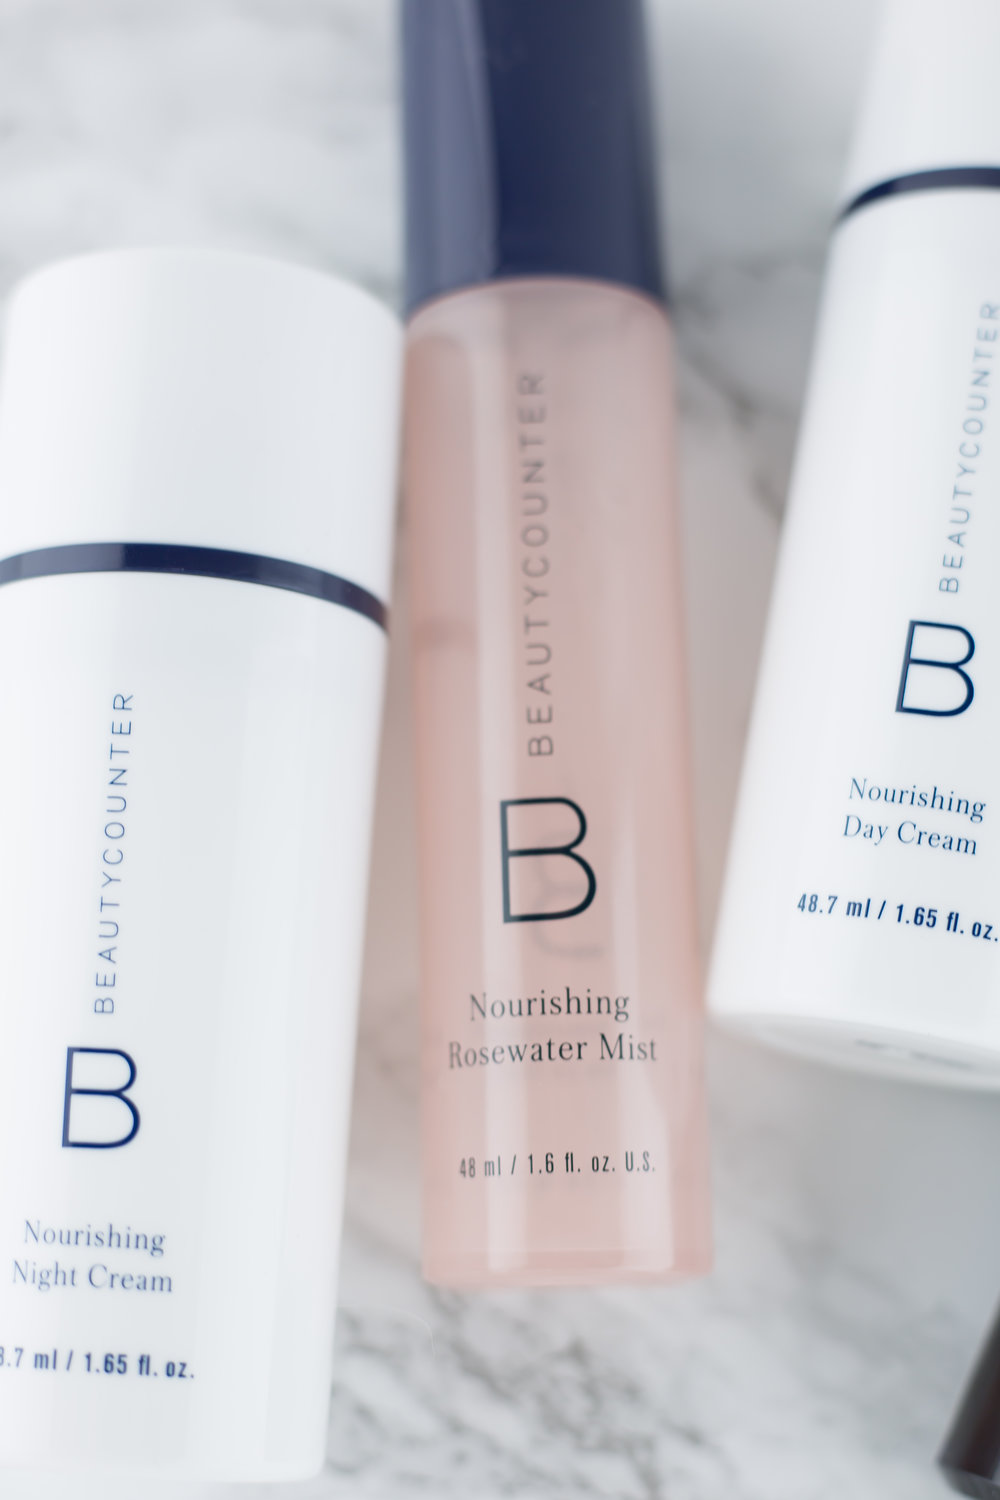 Beautycounter, Minneapolis, Twin Cities, St. Paul, Minnesota, Safer Beauty, Safer Skincare, Nourishing Night Cream, Rosewater Mist, Nourishing Day Cream